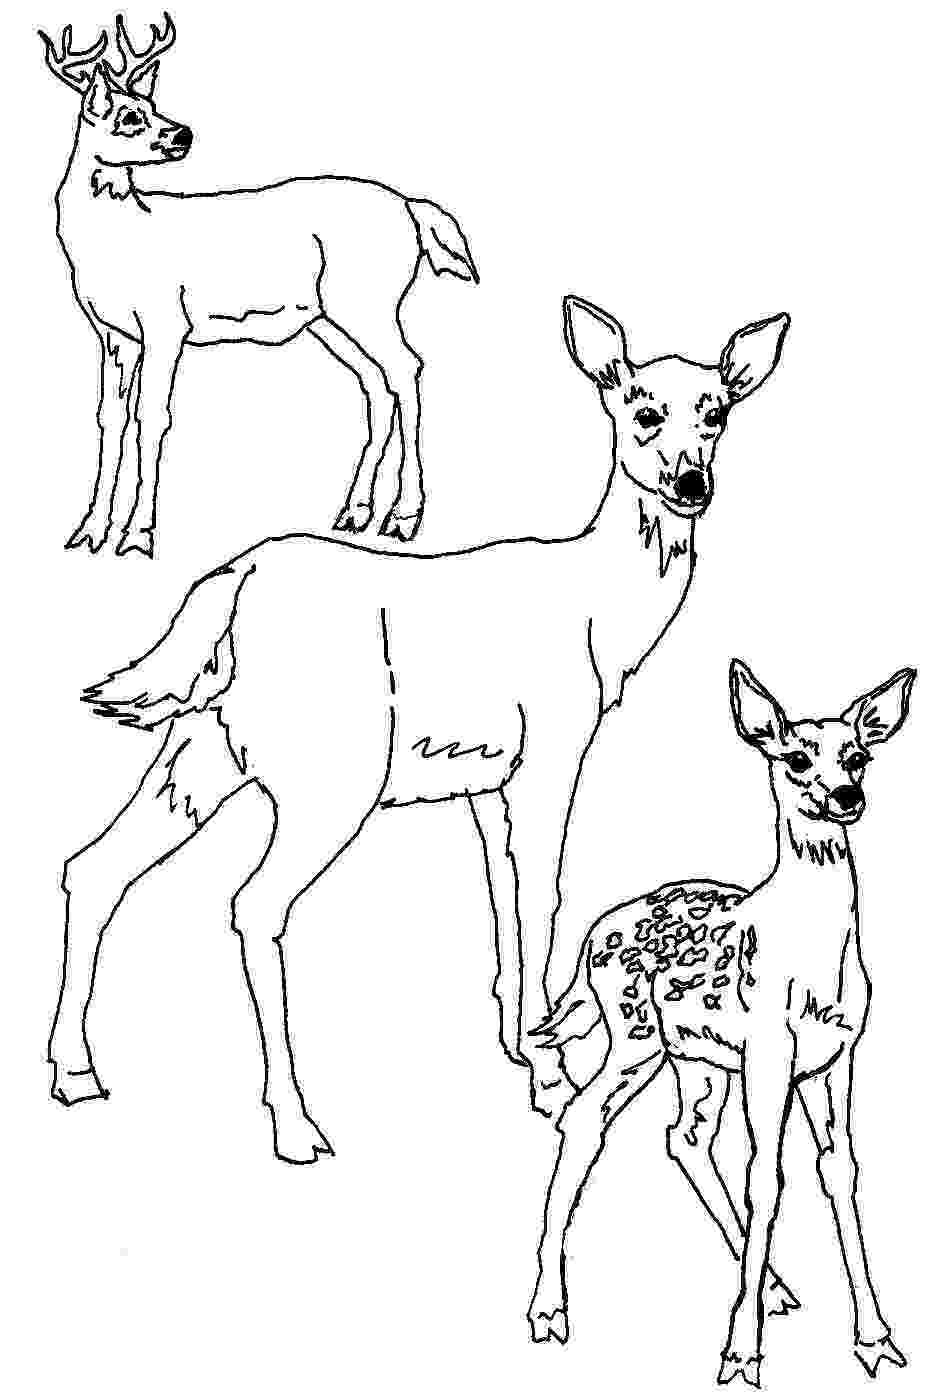 whitetail deer coloring pages buck coloring download buck coloring for free 2019 pages coloring deer whitetail